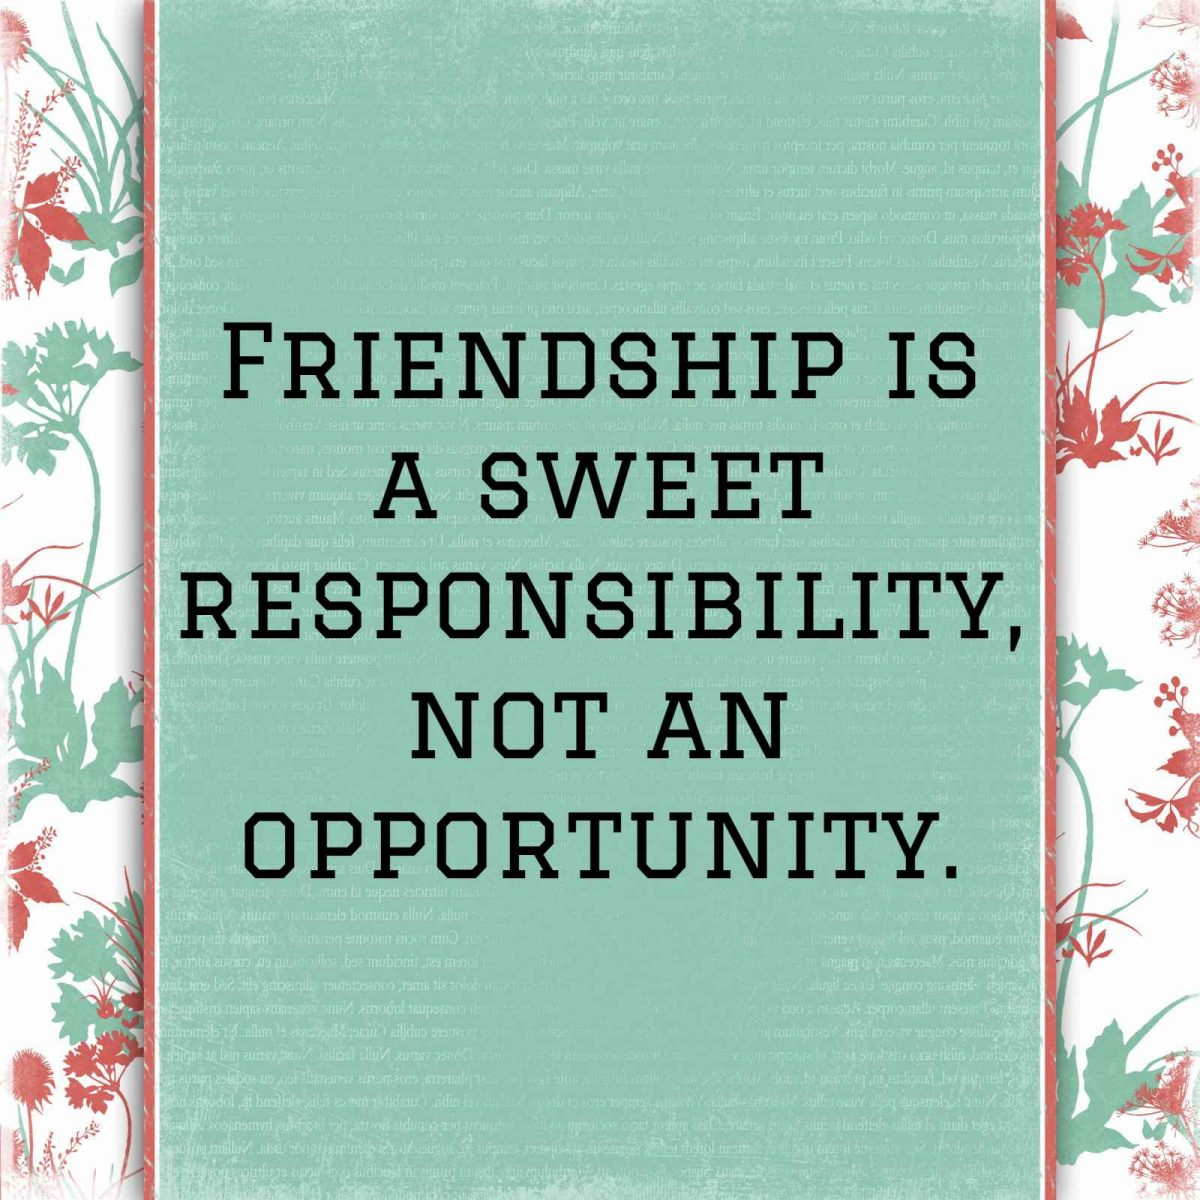 friendship is a sweet responsibility not an opportunity